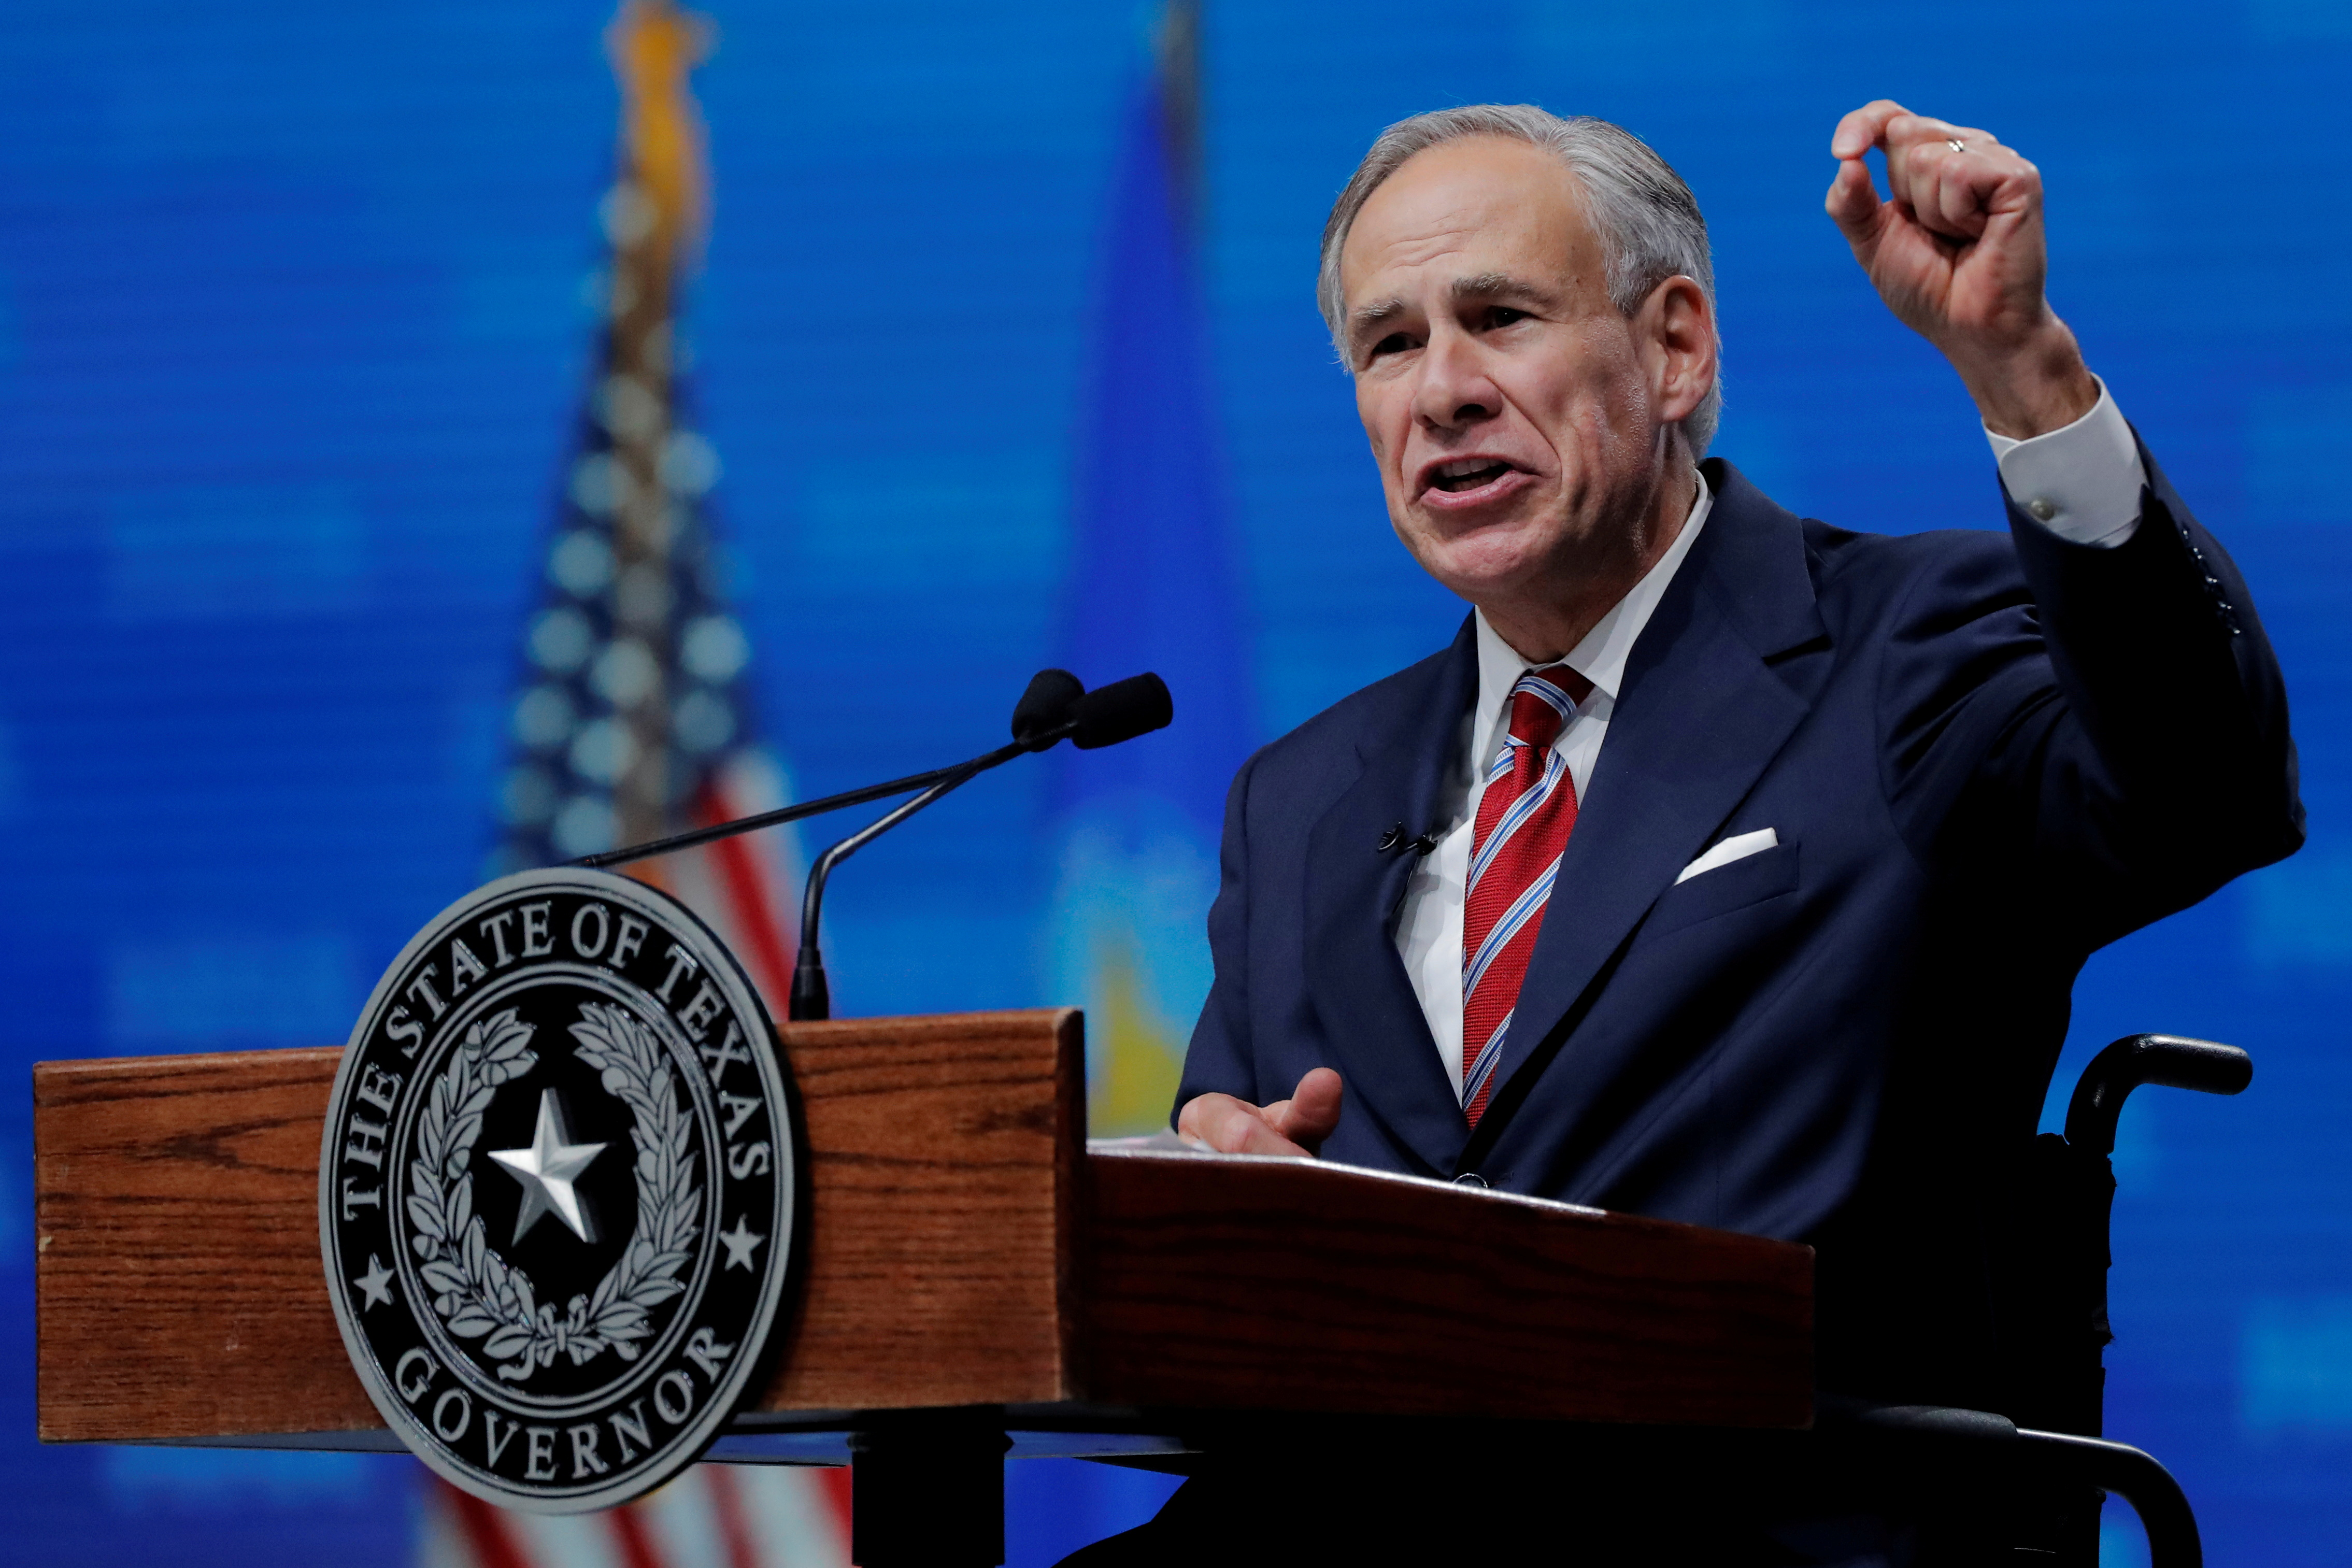 Texas Governor Greg Abbott speaks at the annual National Rifle Association (NRA) convention in Dallas, Texas, U.S., May 4, 2018. REUTERS/Lucas Jackson/File Photo